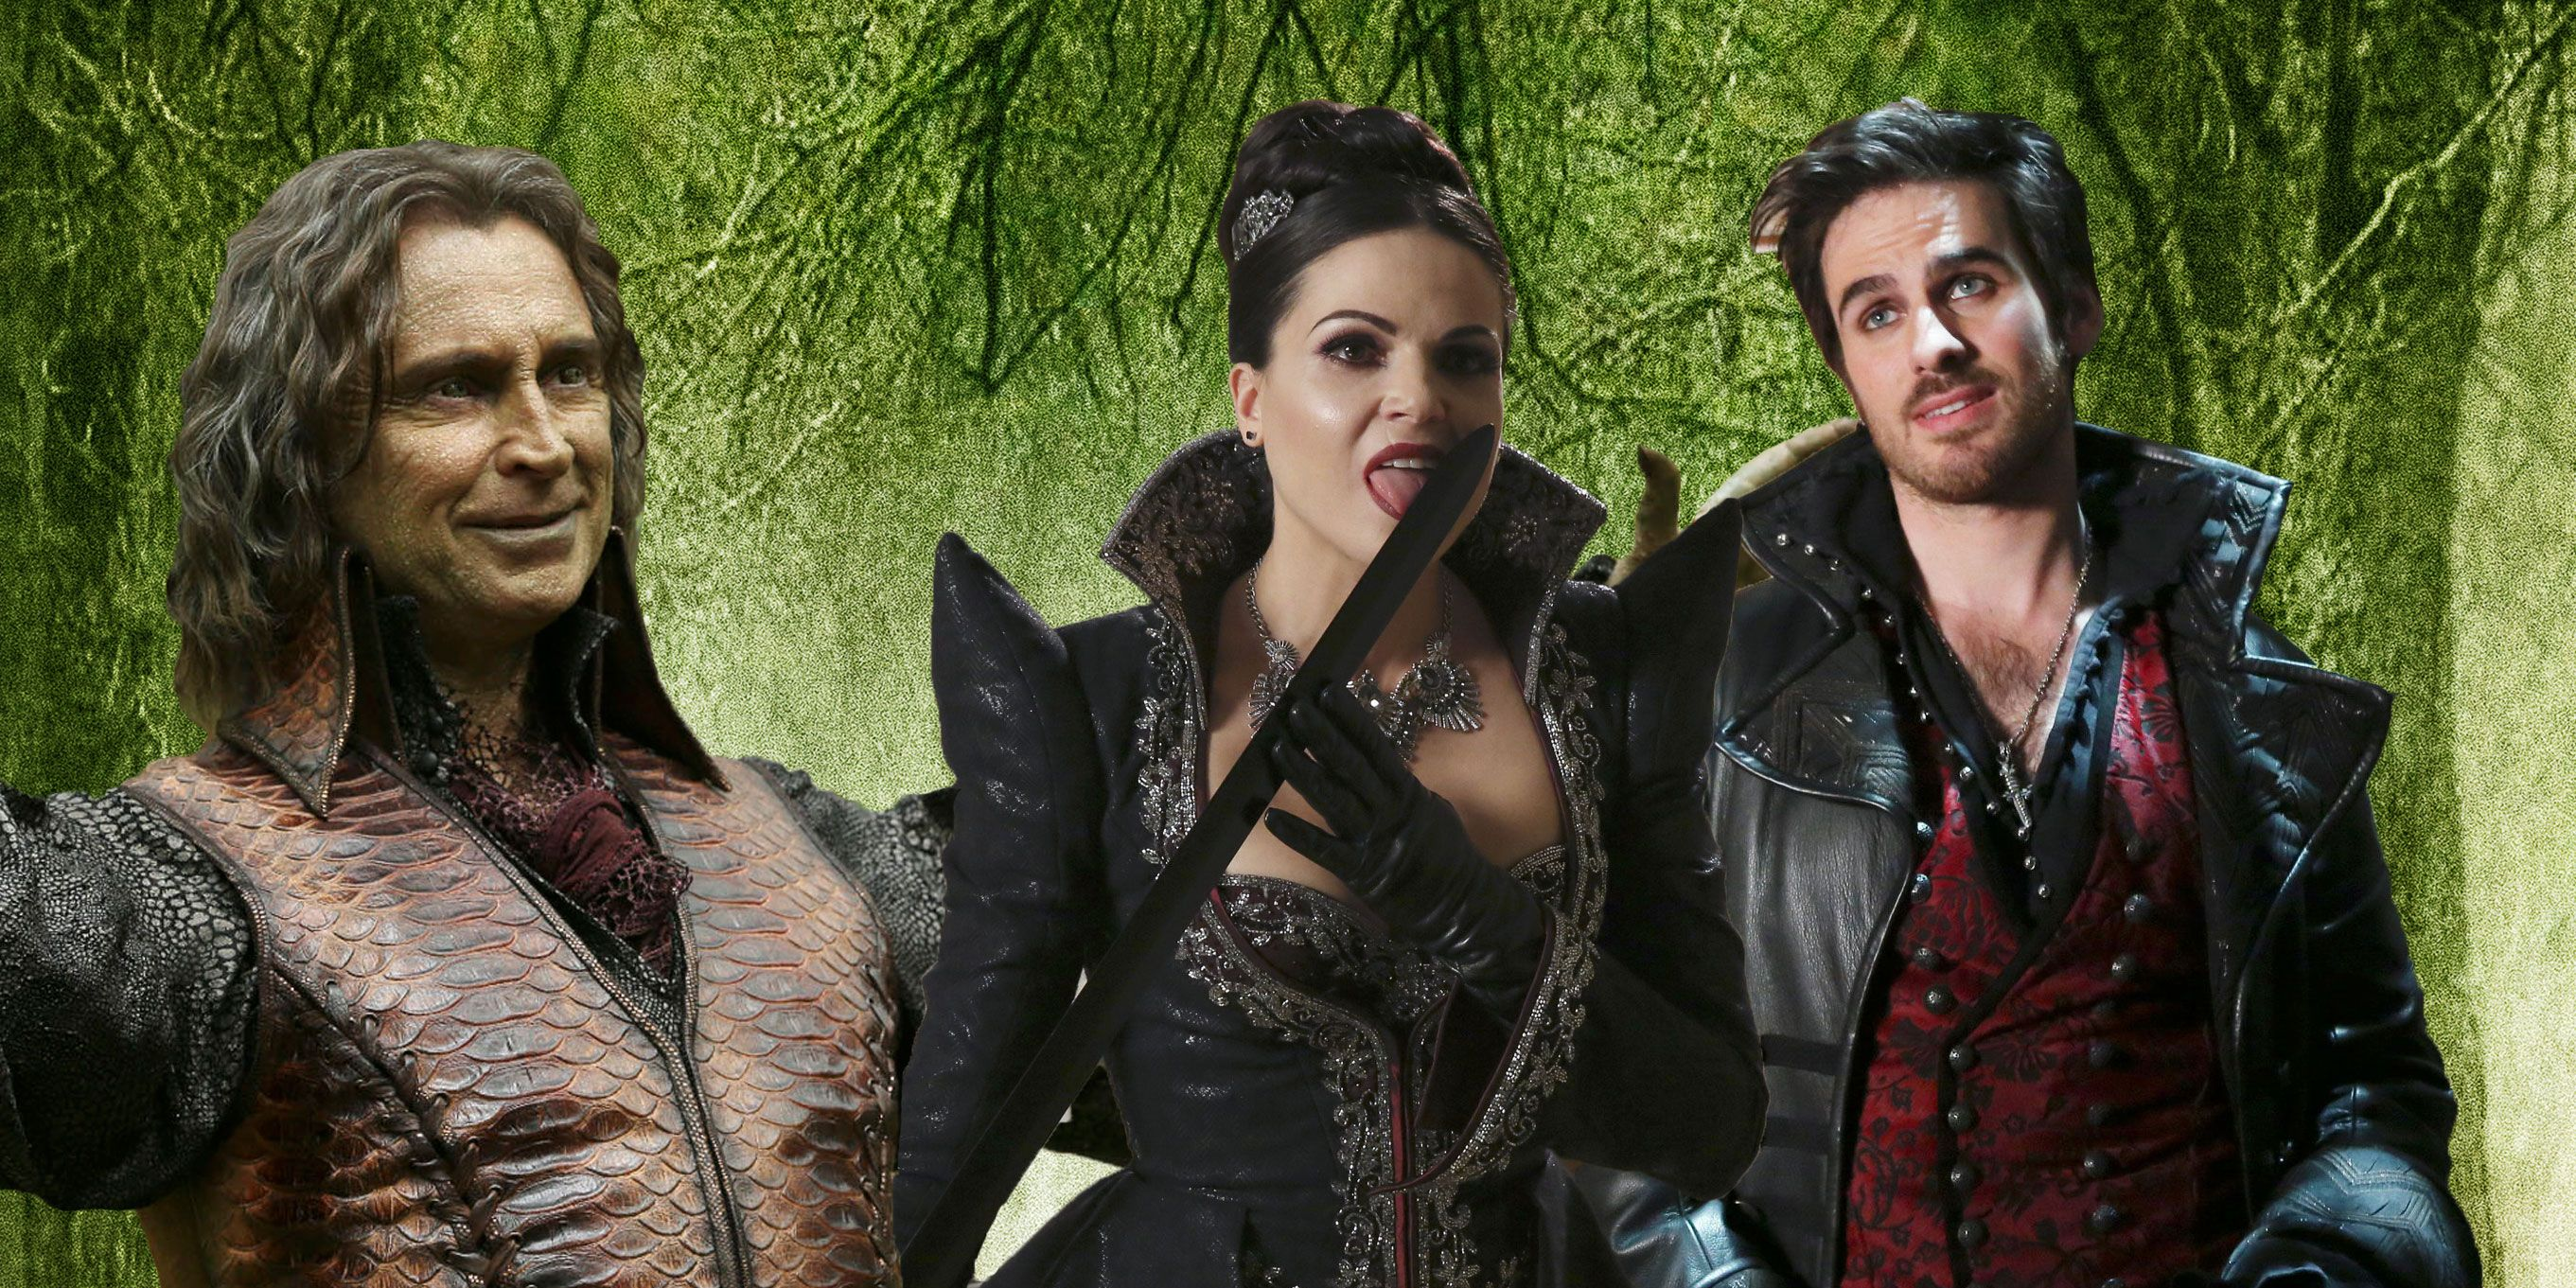 Once Upon a Time: Hook (Colin O'Donoghue), Rumplestiltskin (Robert Carlyle), and Regina (Lana Parrilla)